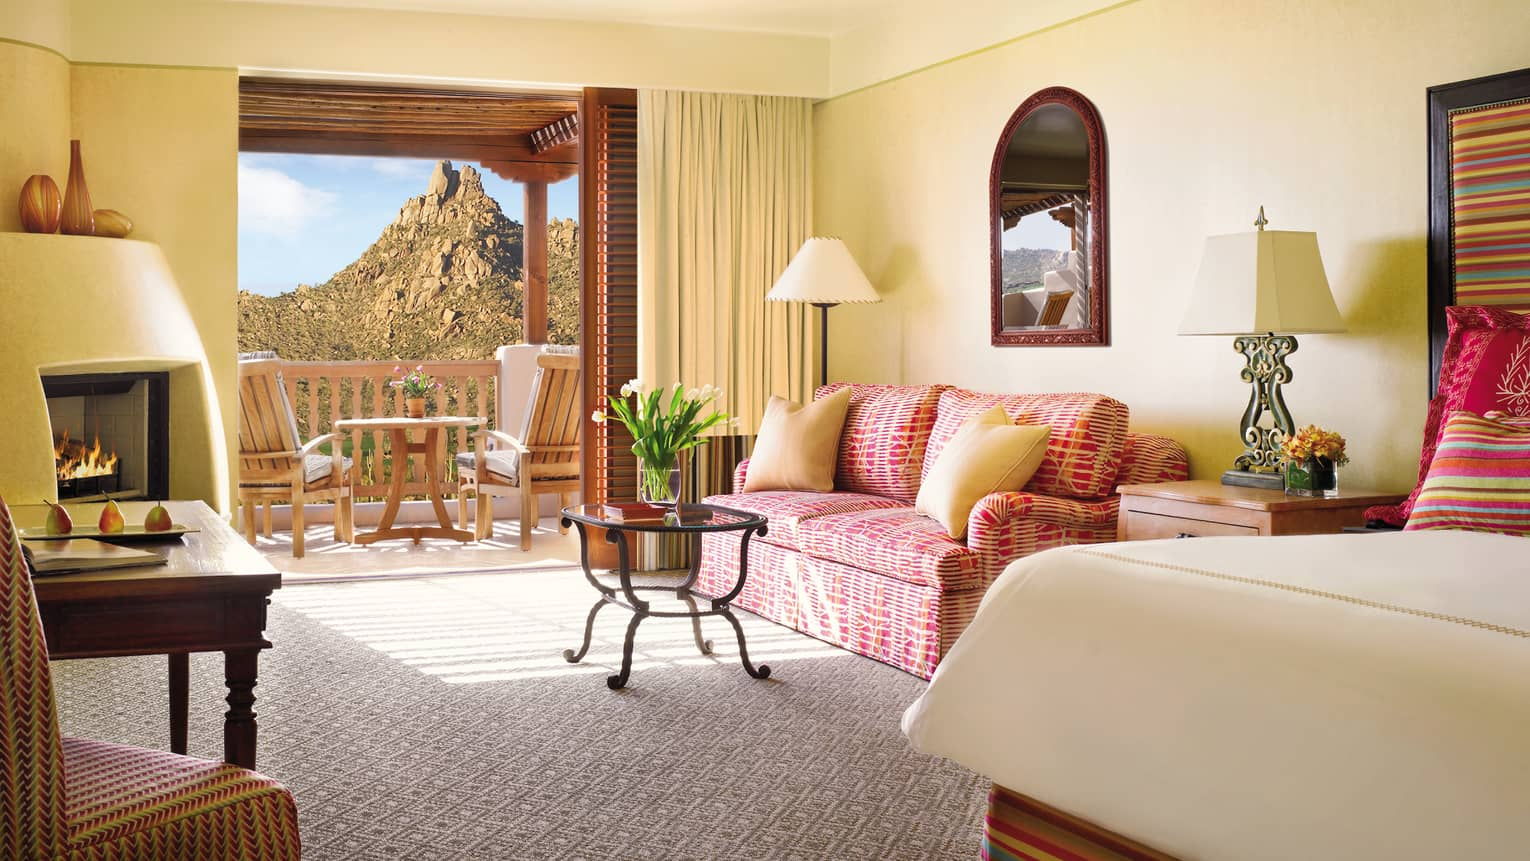 Deluxe Casita Room corner of bed, pink patterned loveseat and table by open balcony door, mountain view